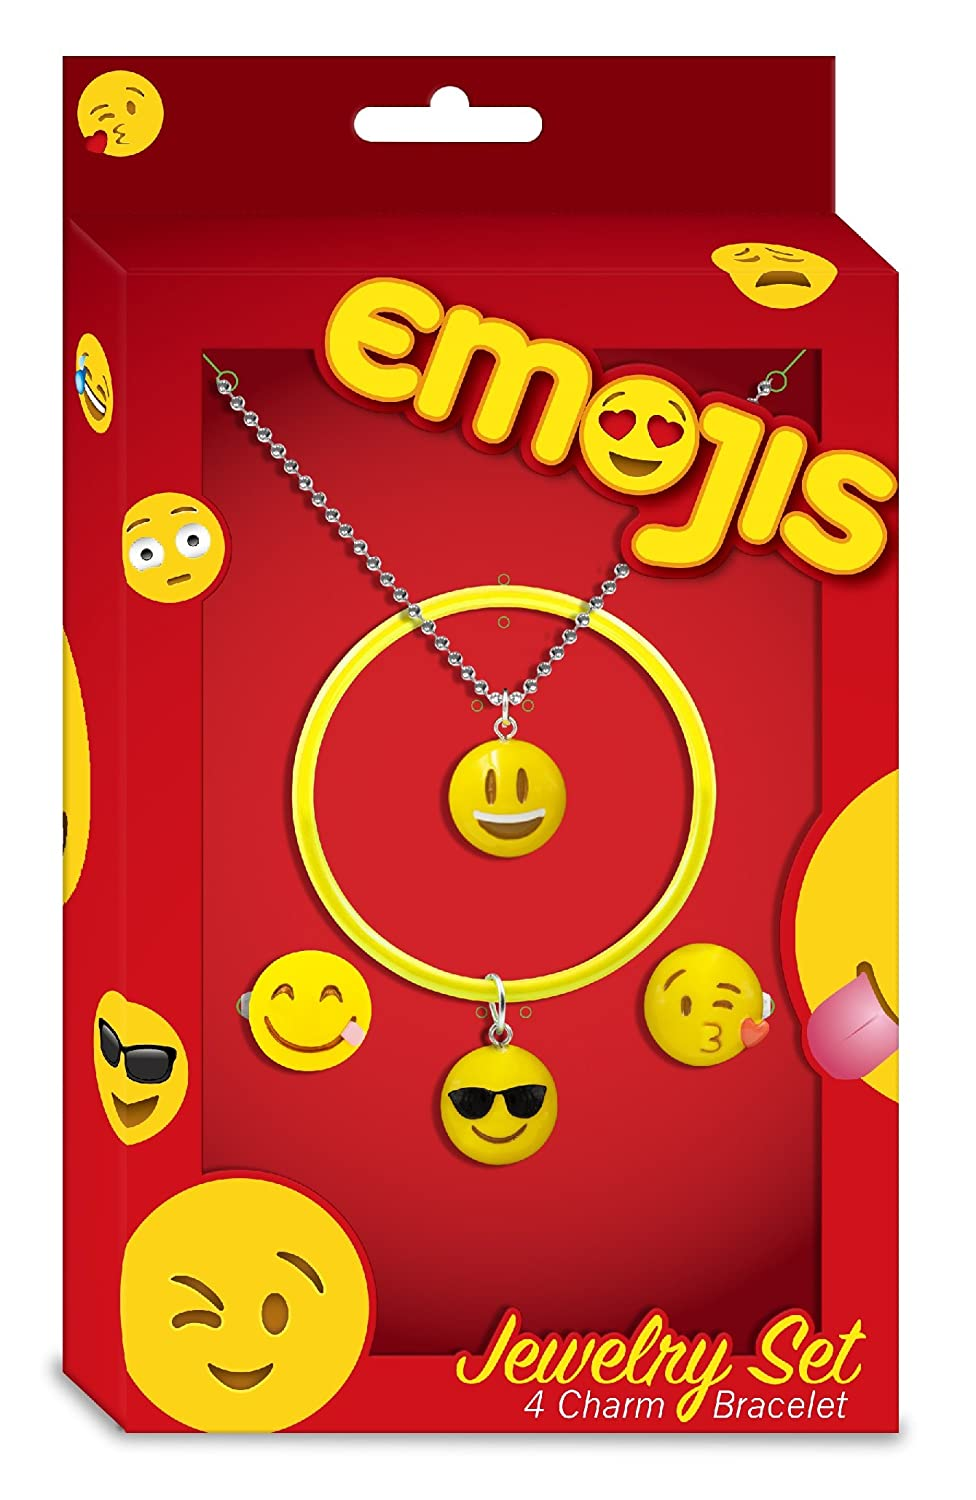 and Pendants Perfect for Holiday Gifts Emojis Jewelry Sets with Interchangeable Charm Bracelets Rings